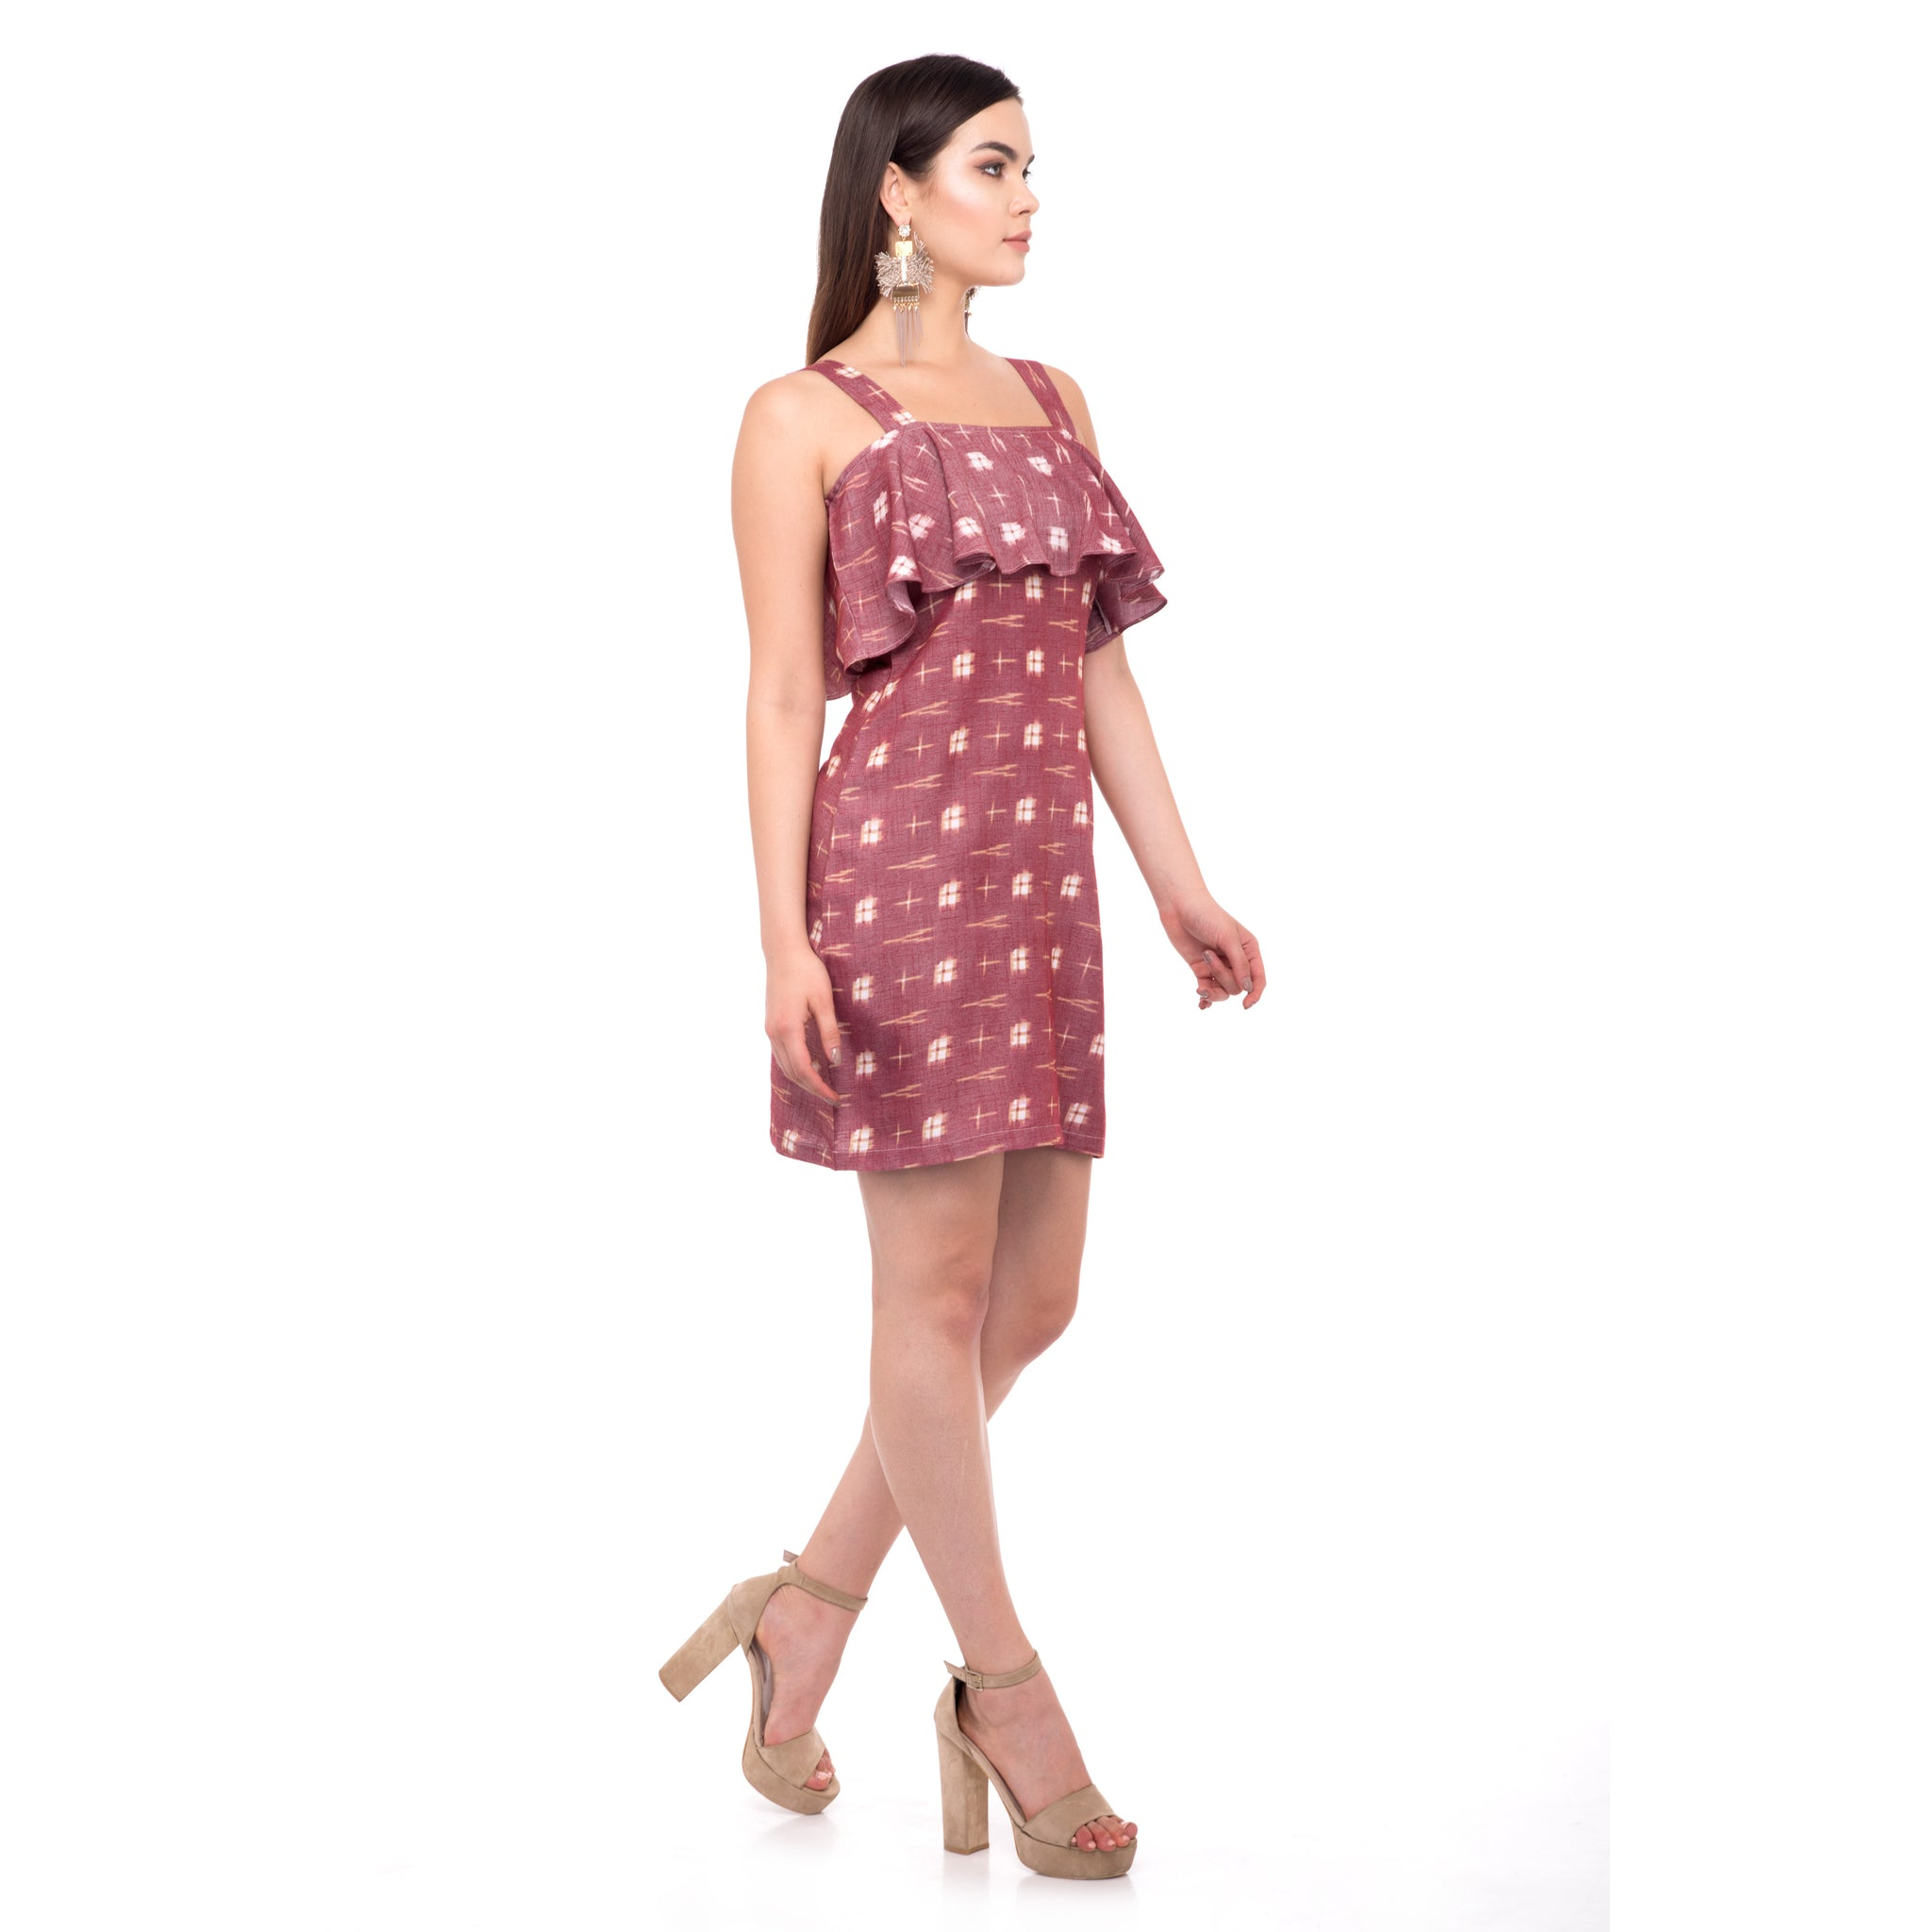 MAROON BIG MOTIFS DRESS